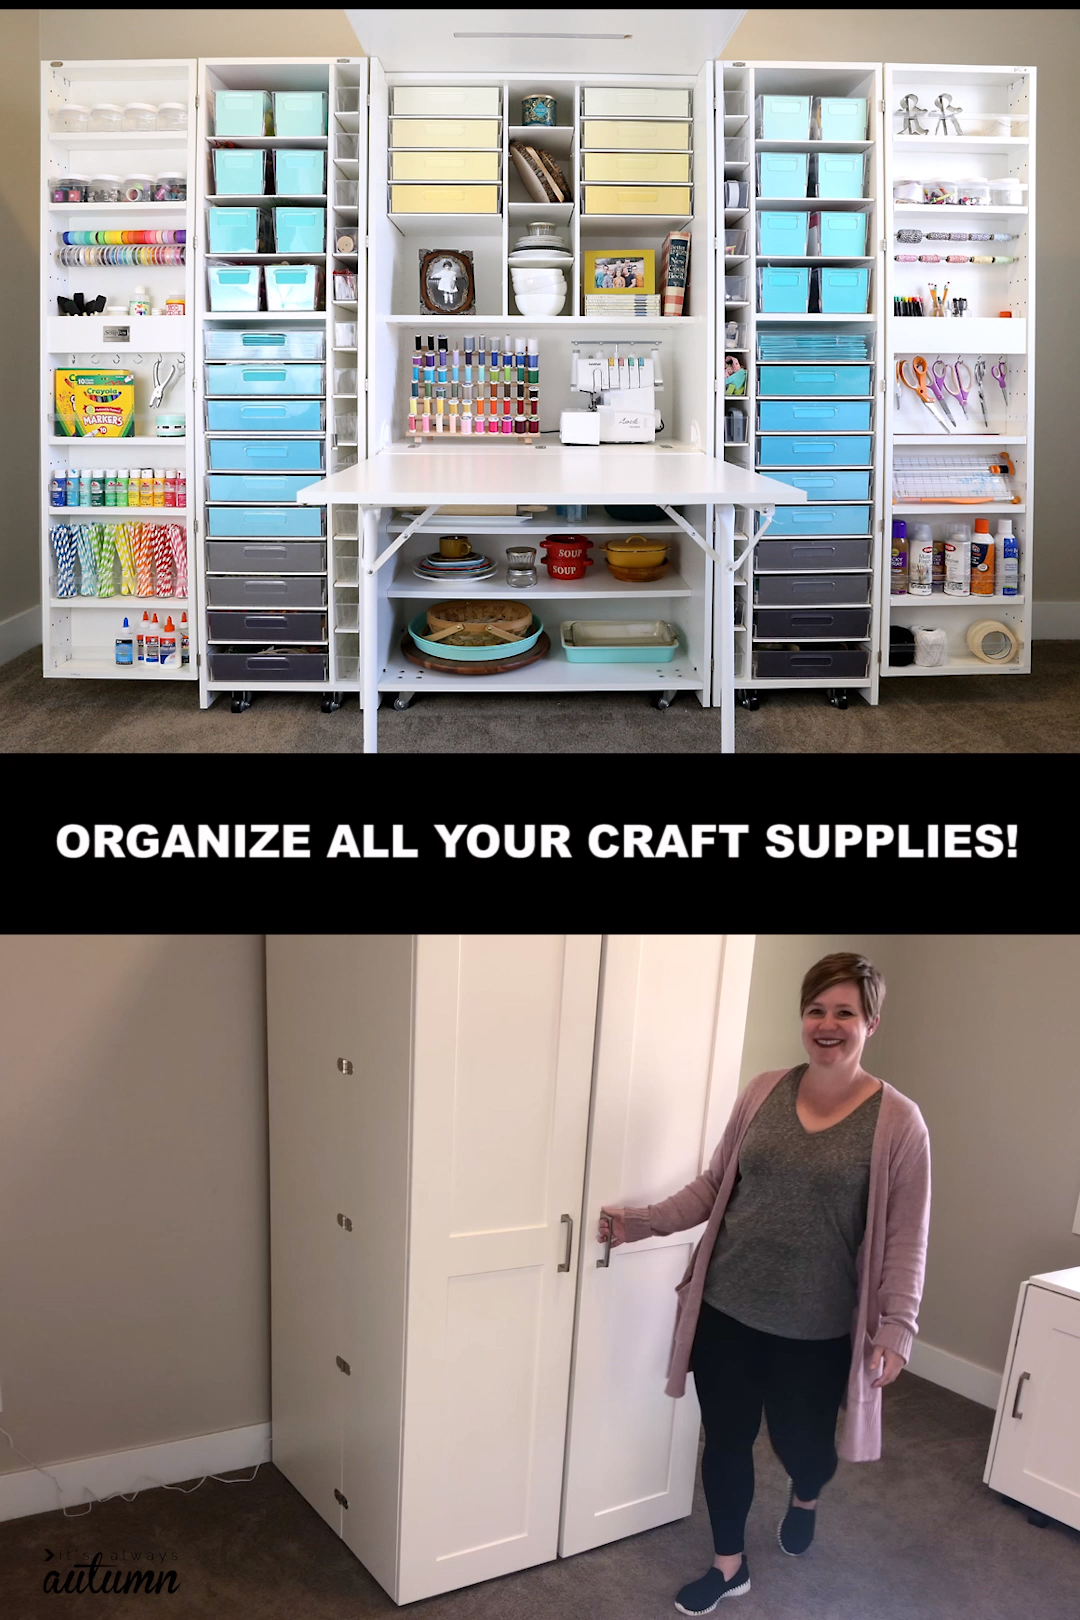 See how my brand new DreamBox has completely transformed my craft room! Click through to the blog for before and after photos, a full video tour of the box, and sale info. #sponsored